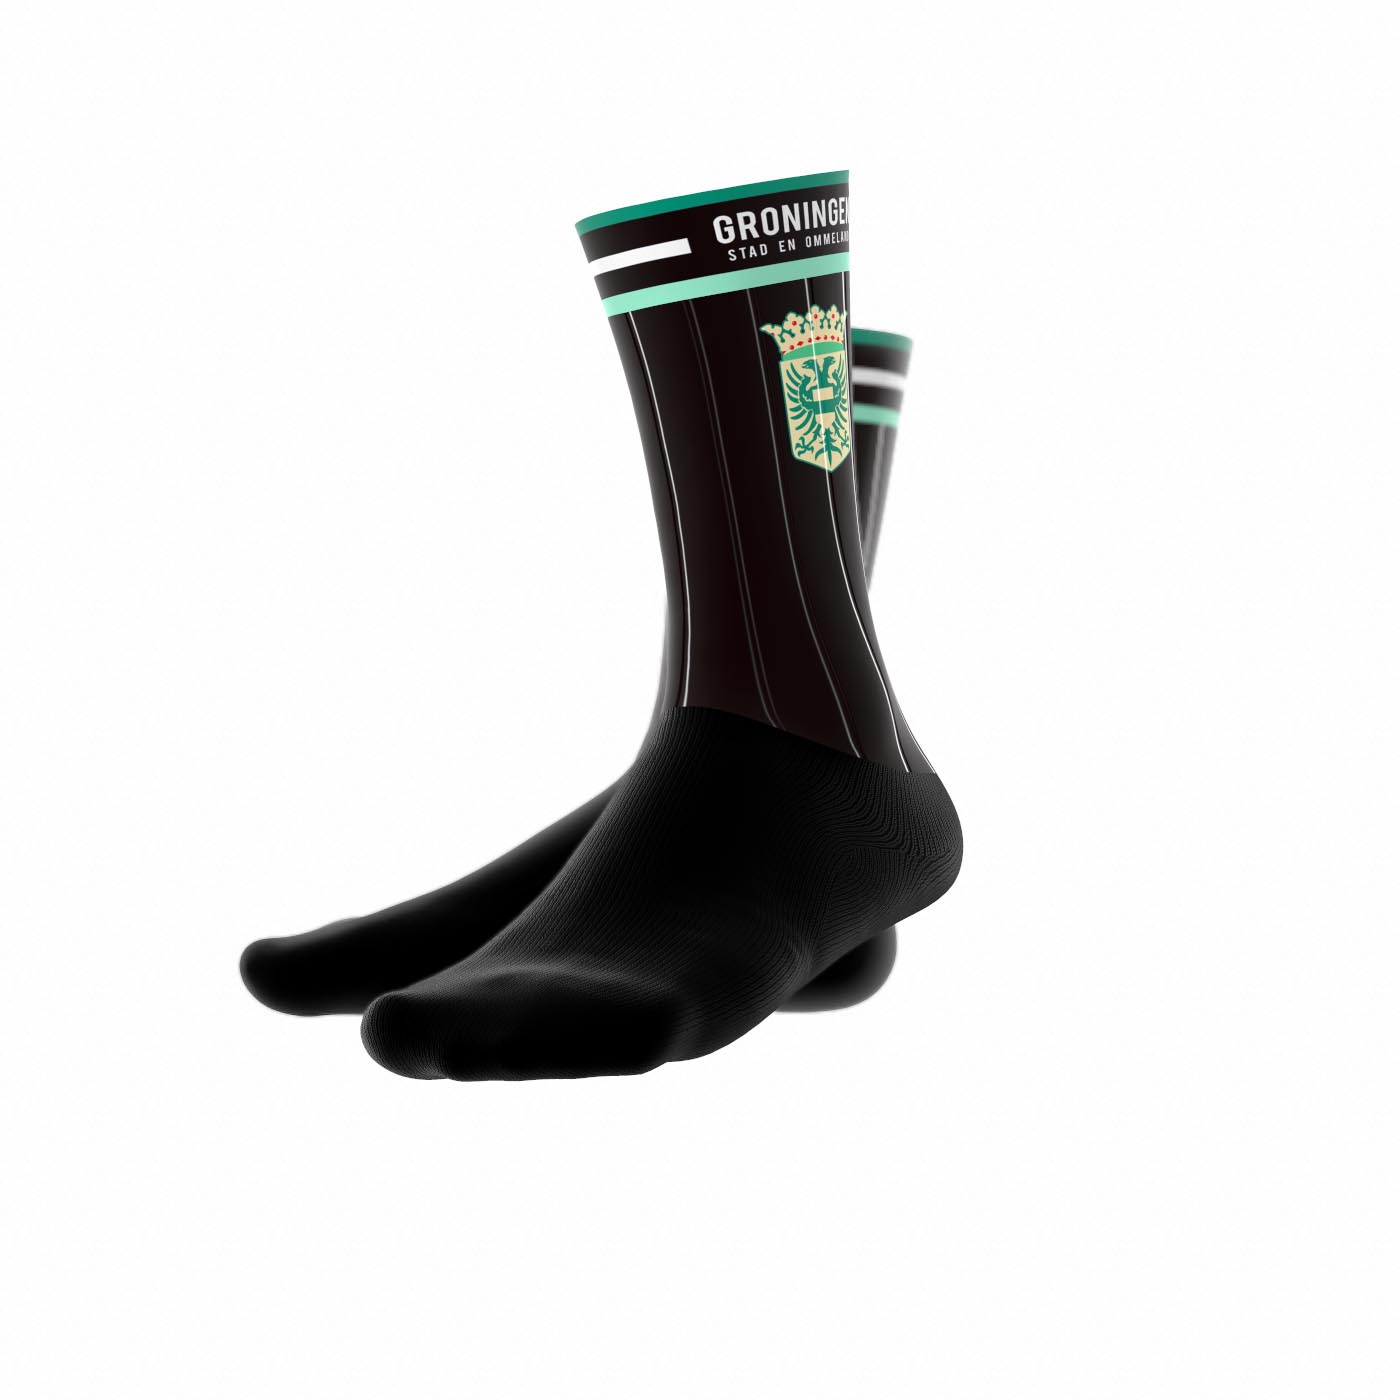 prj20-010123_acc-speedsocks_persp